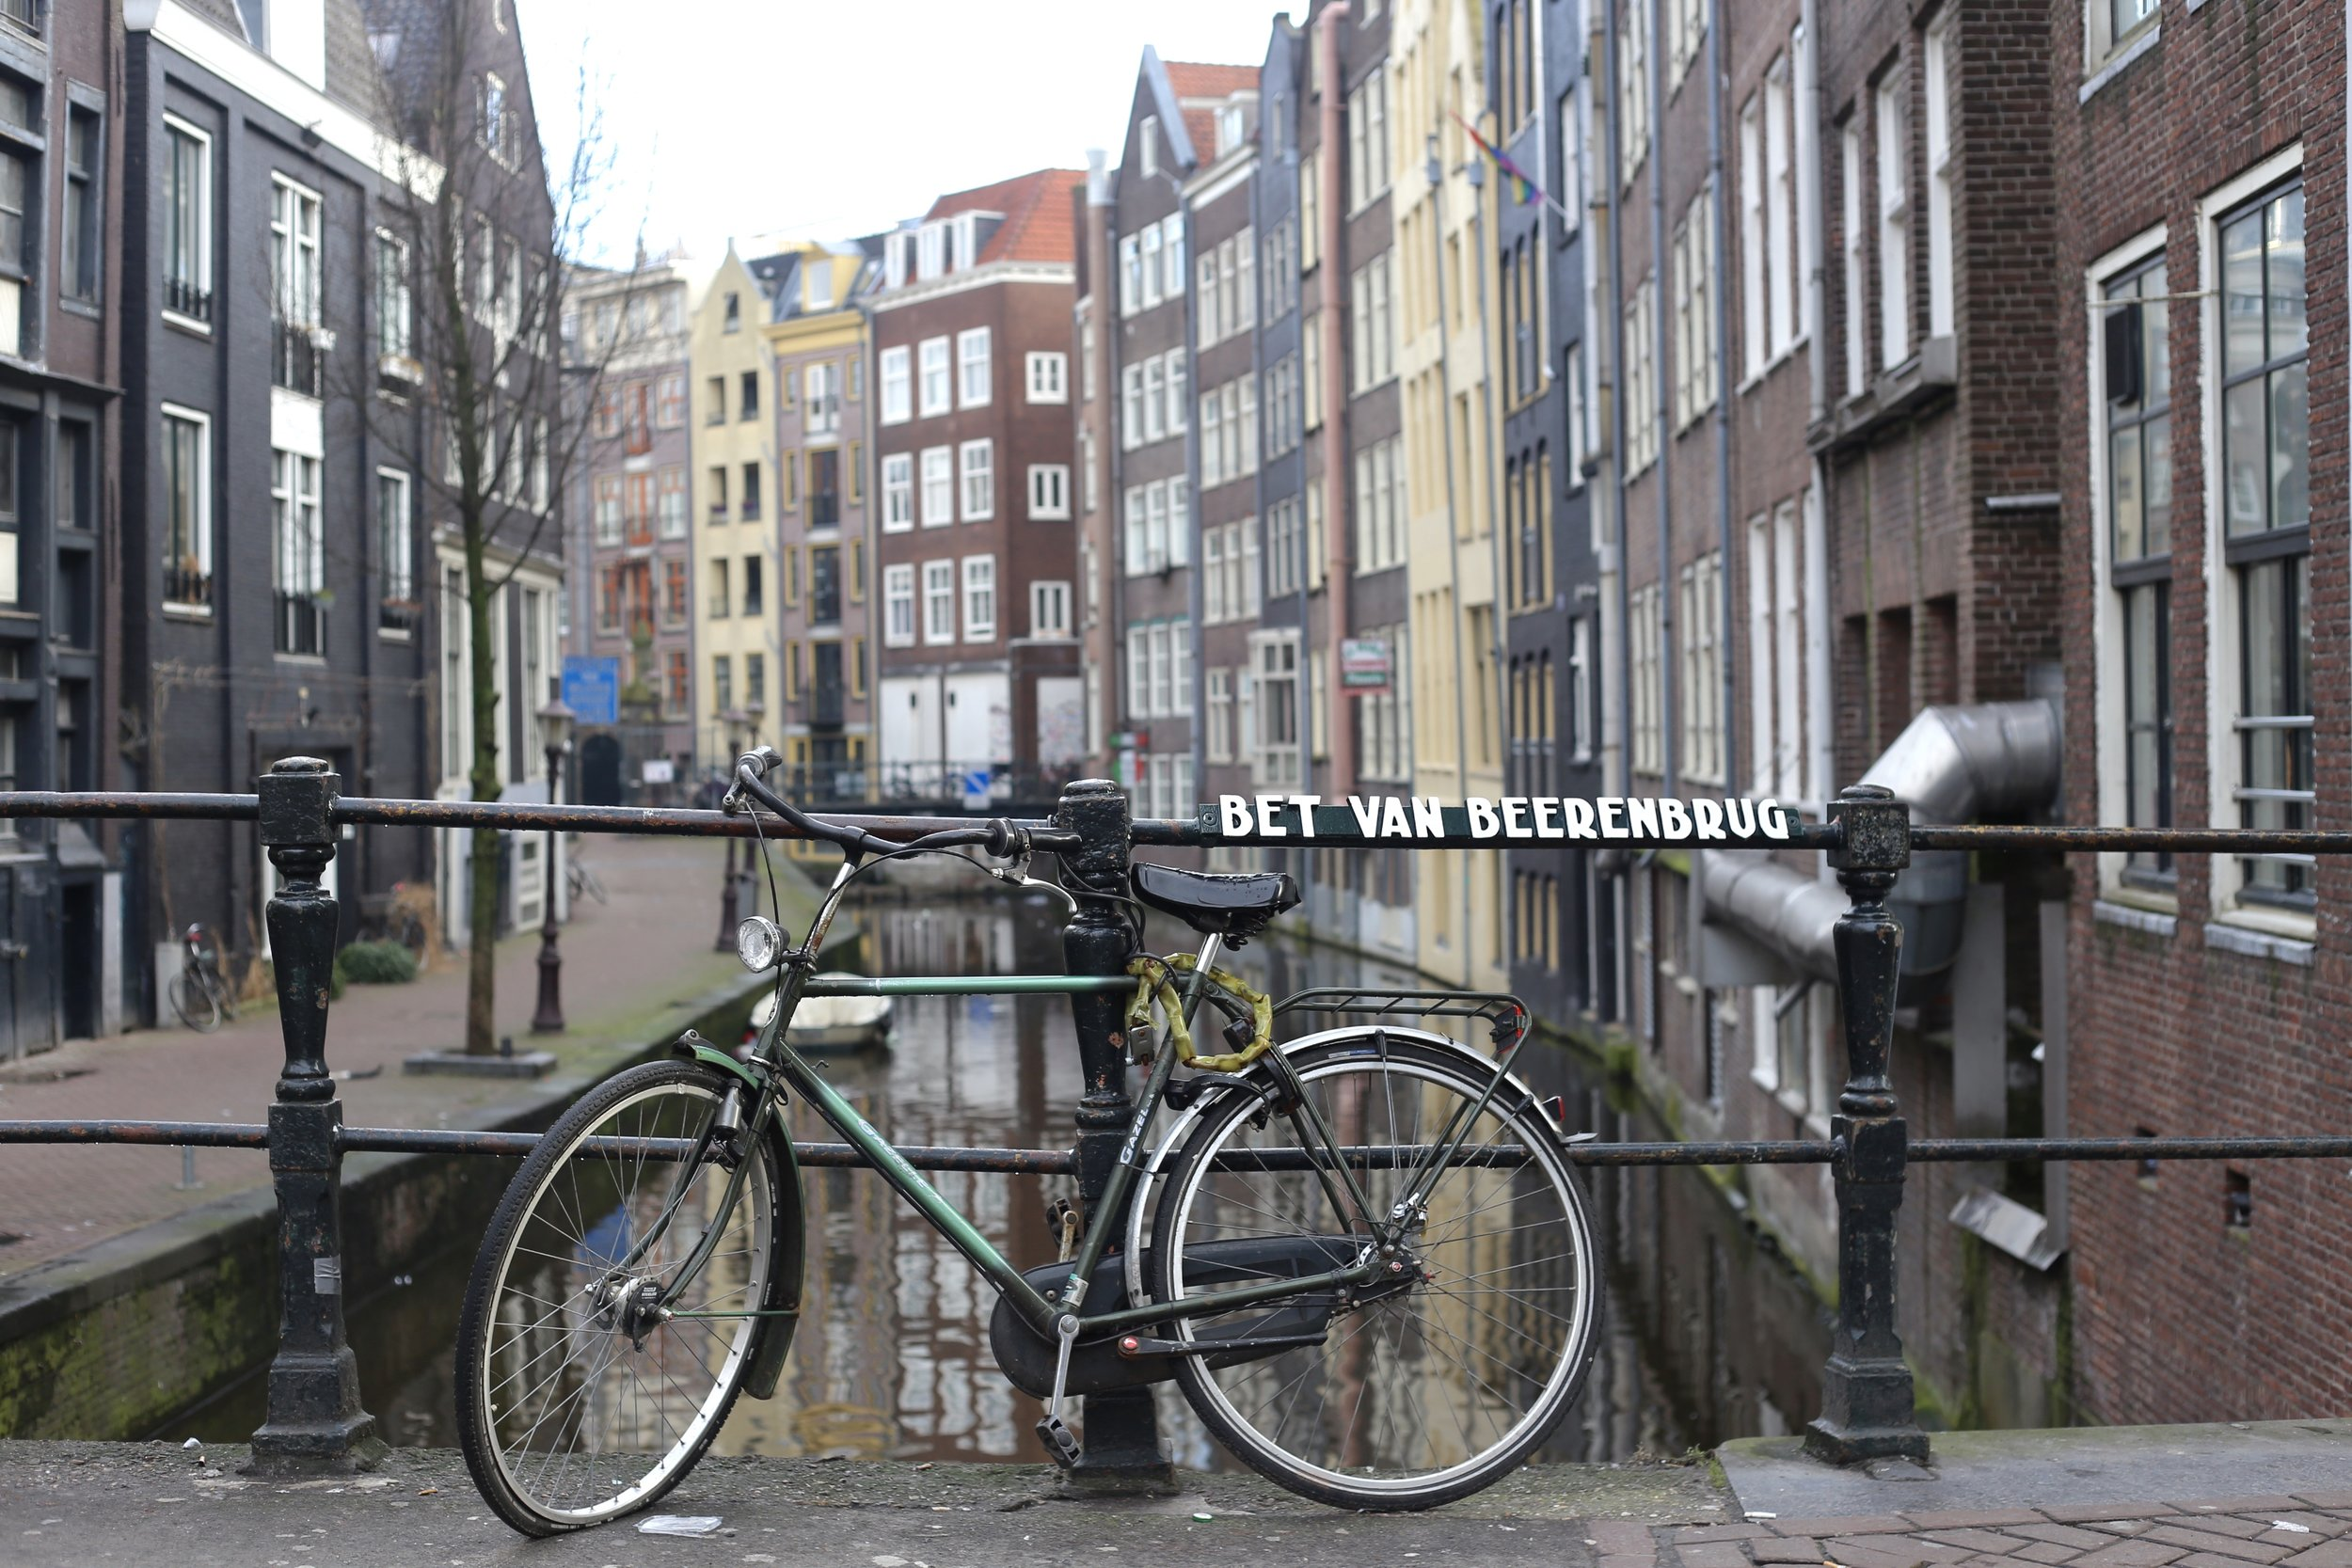 A bike set on a bridge over a canal - picturesque moment.